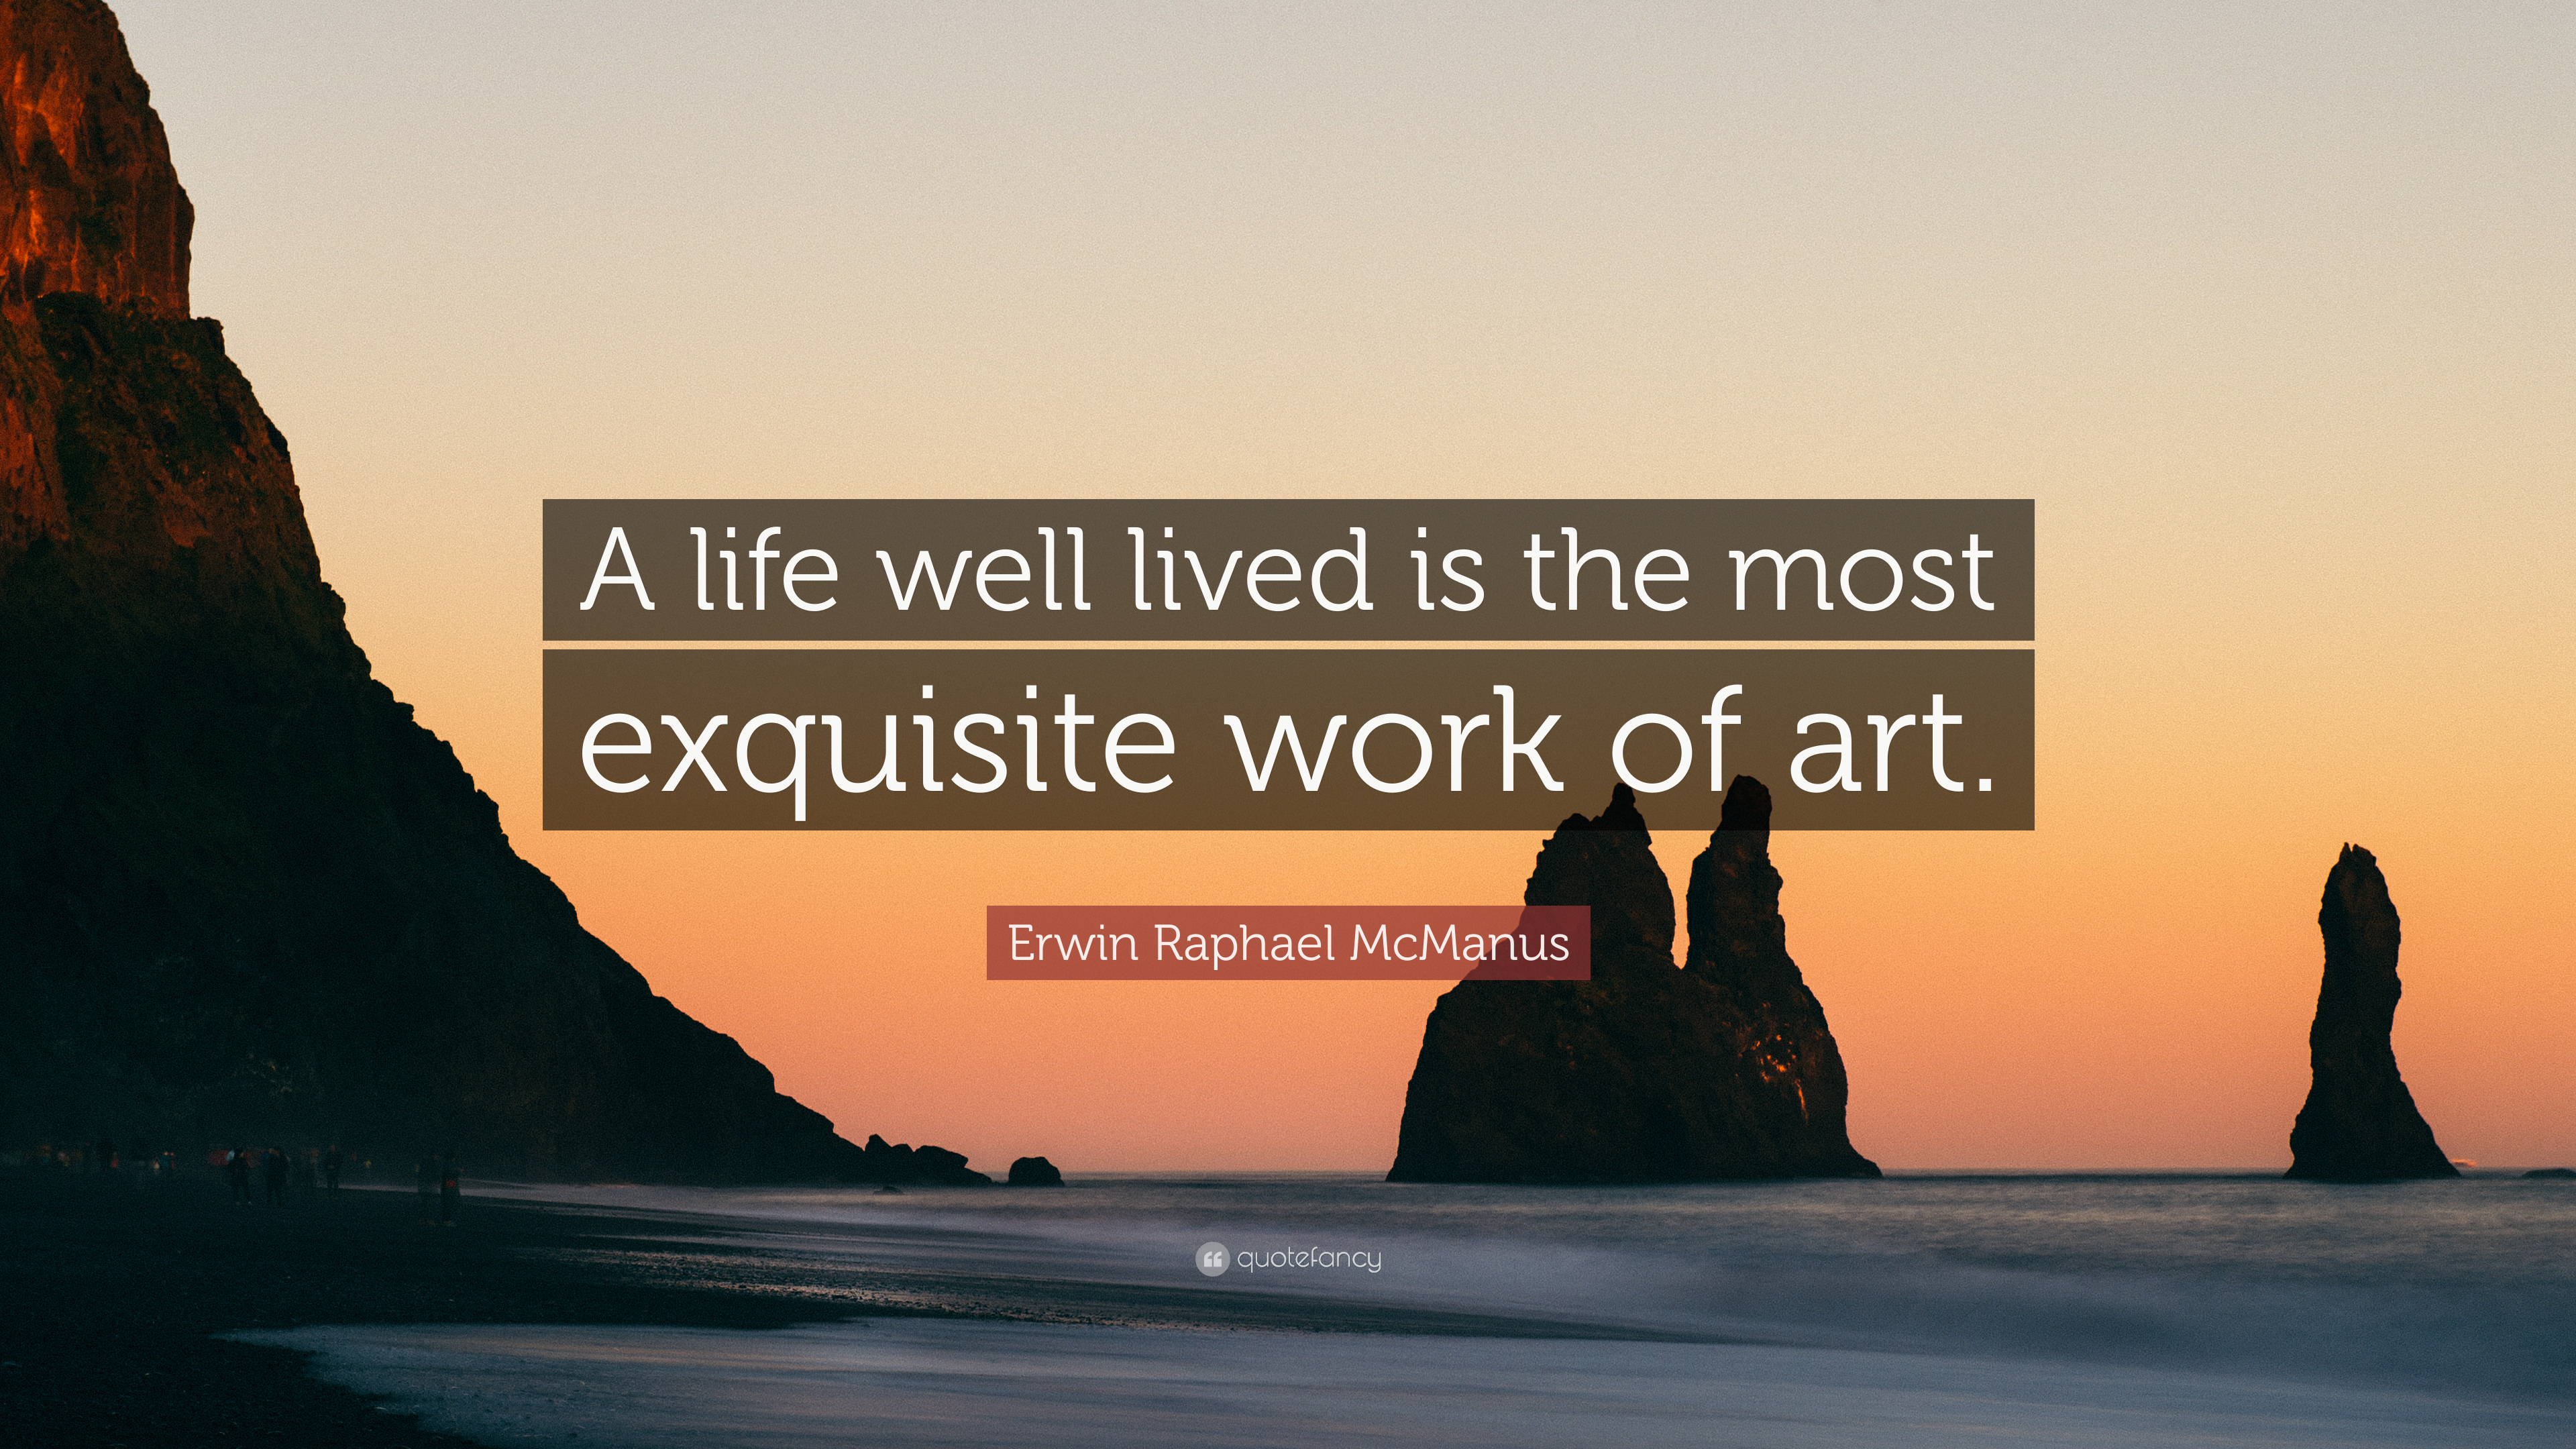 A Life Well Lived Quotes Erwin Raphael Mcmanus Quote U201cA Life Well Lived Is  The